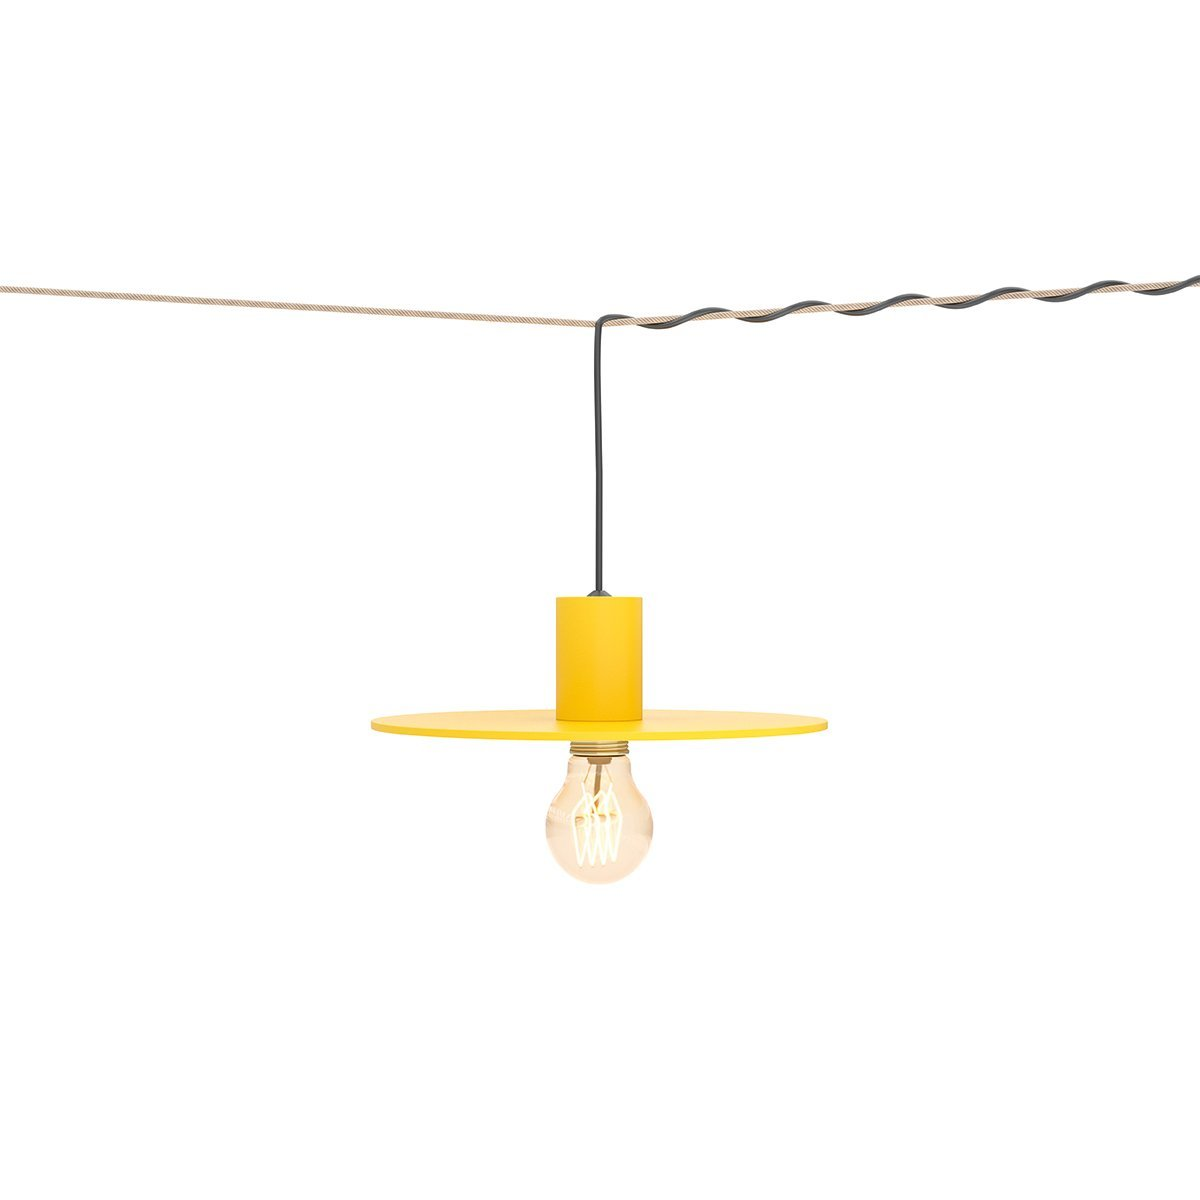 W�nder The Disc Hanglamp - Geel RAL1018